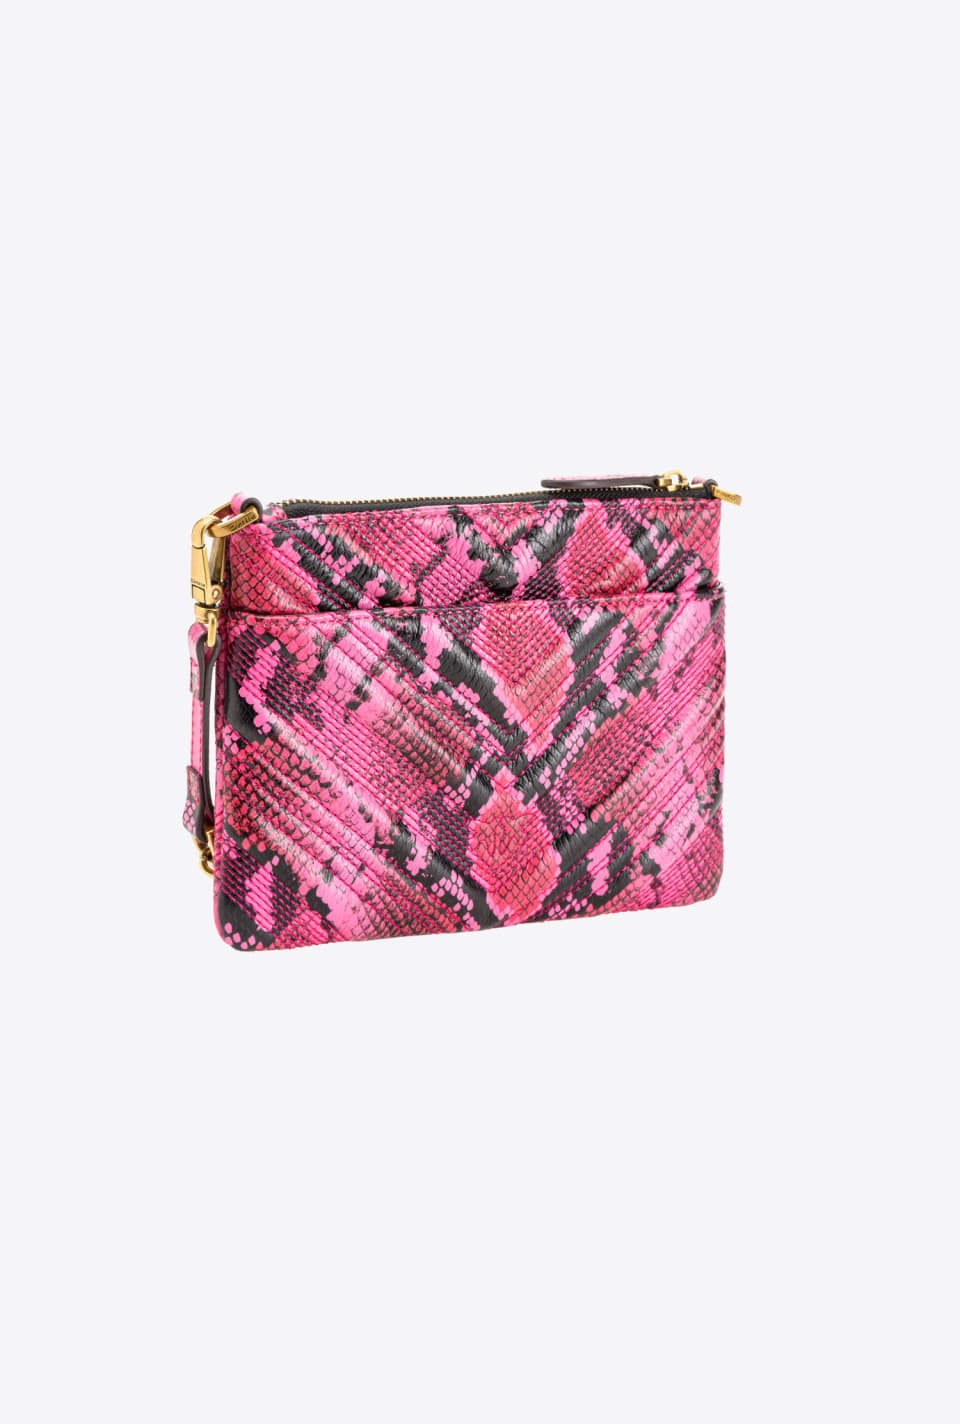 Flat Bag Exotics - Pinko